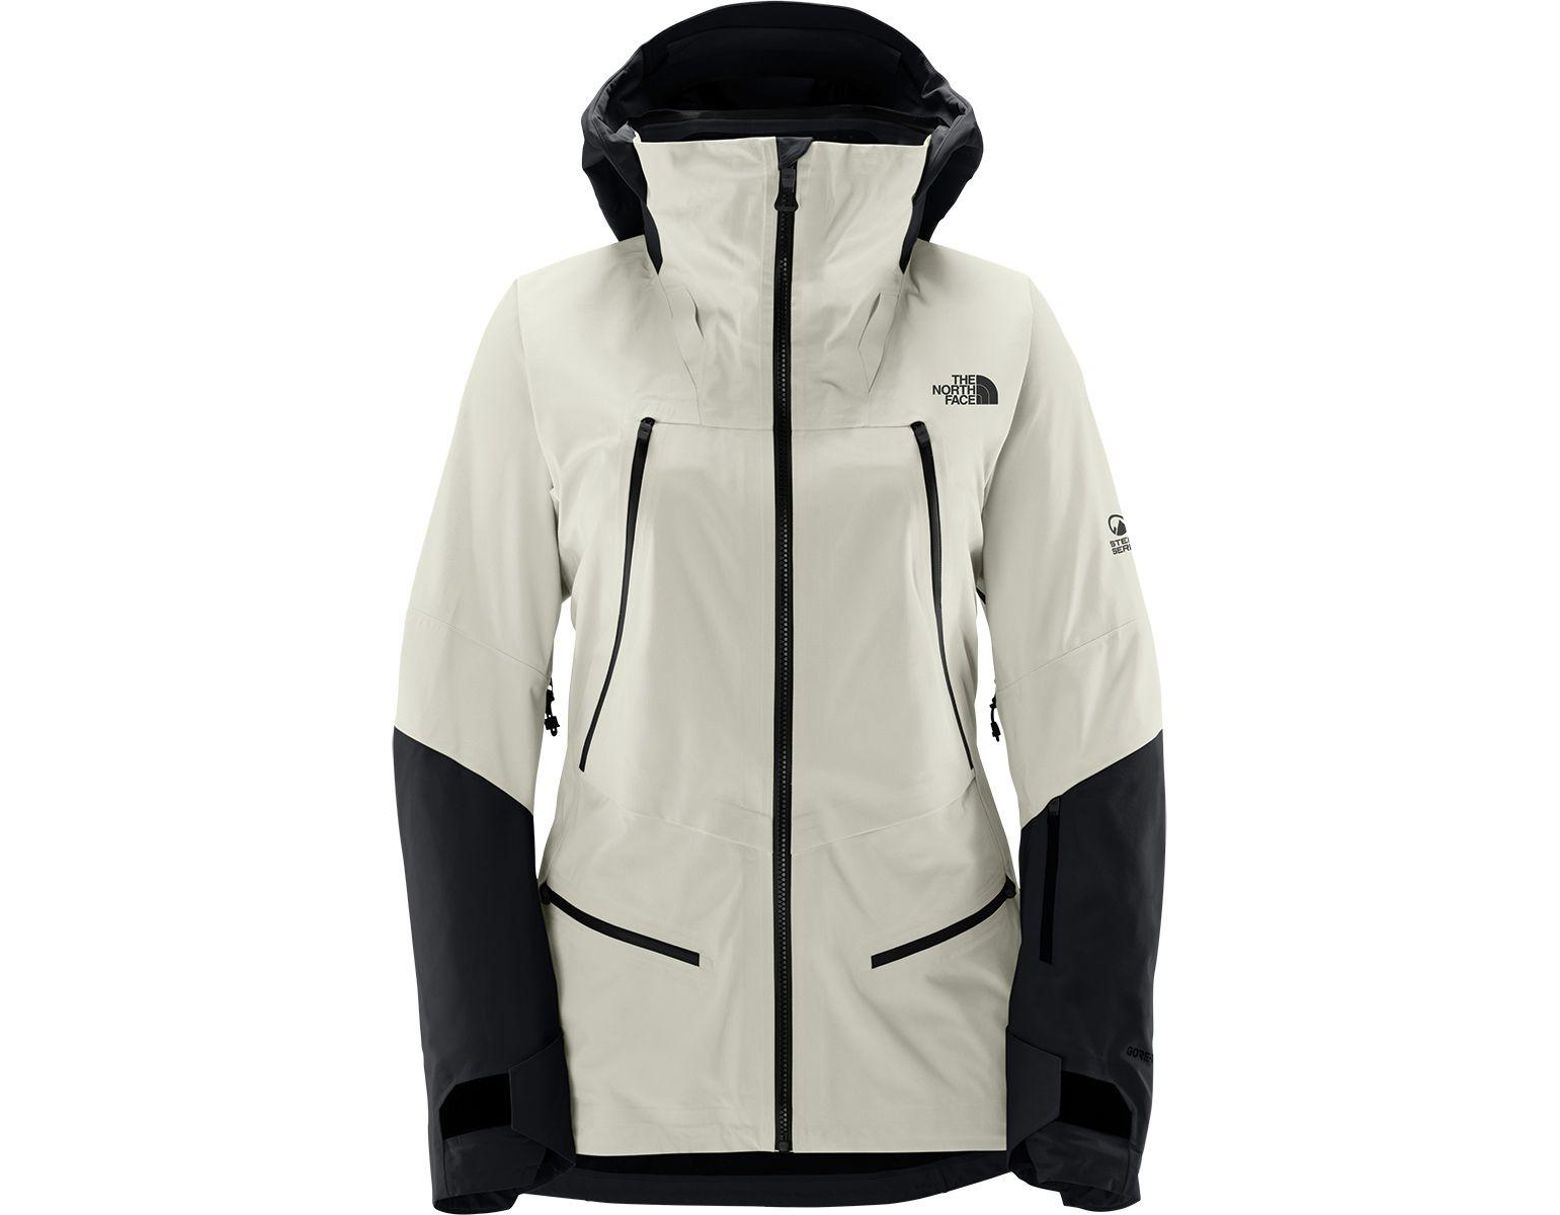 834df66c0 Women's Gray Purist Jacket